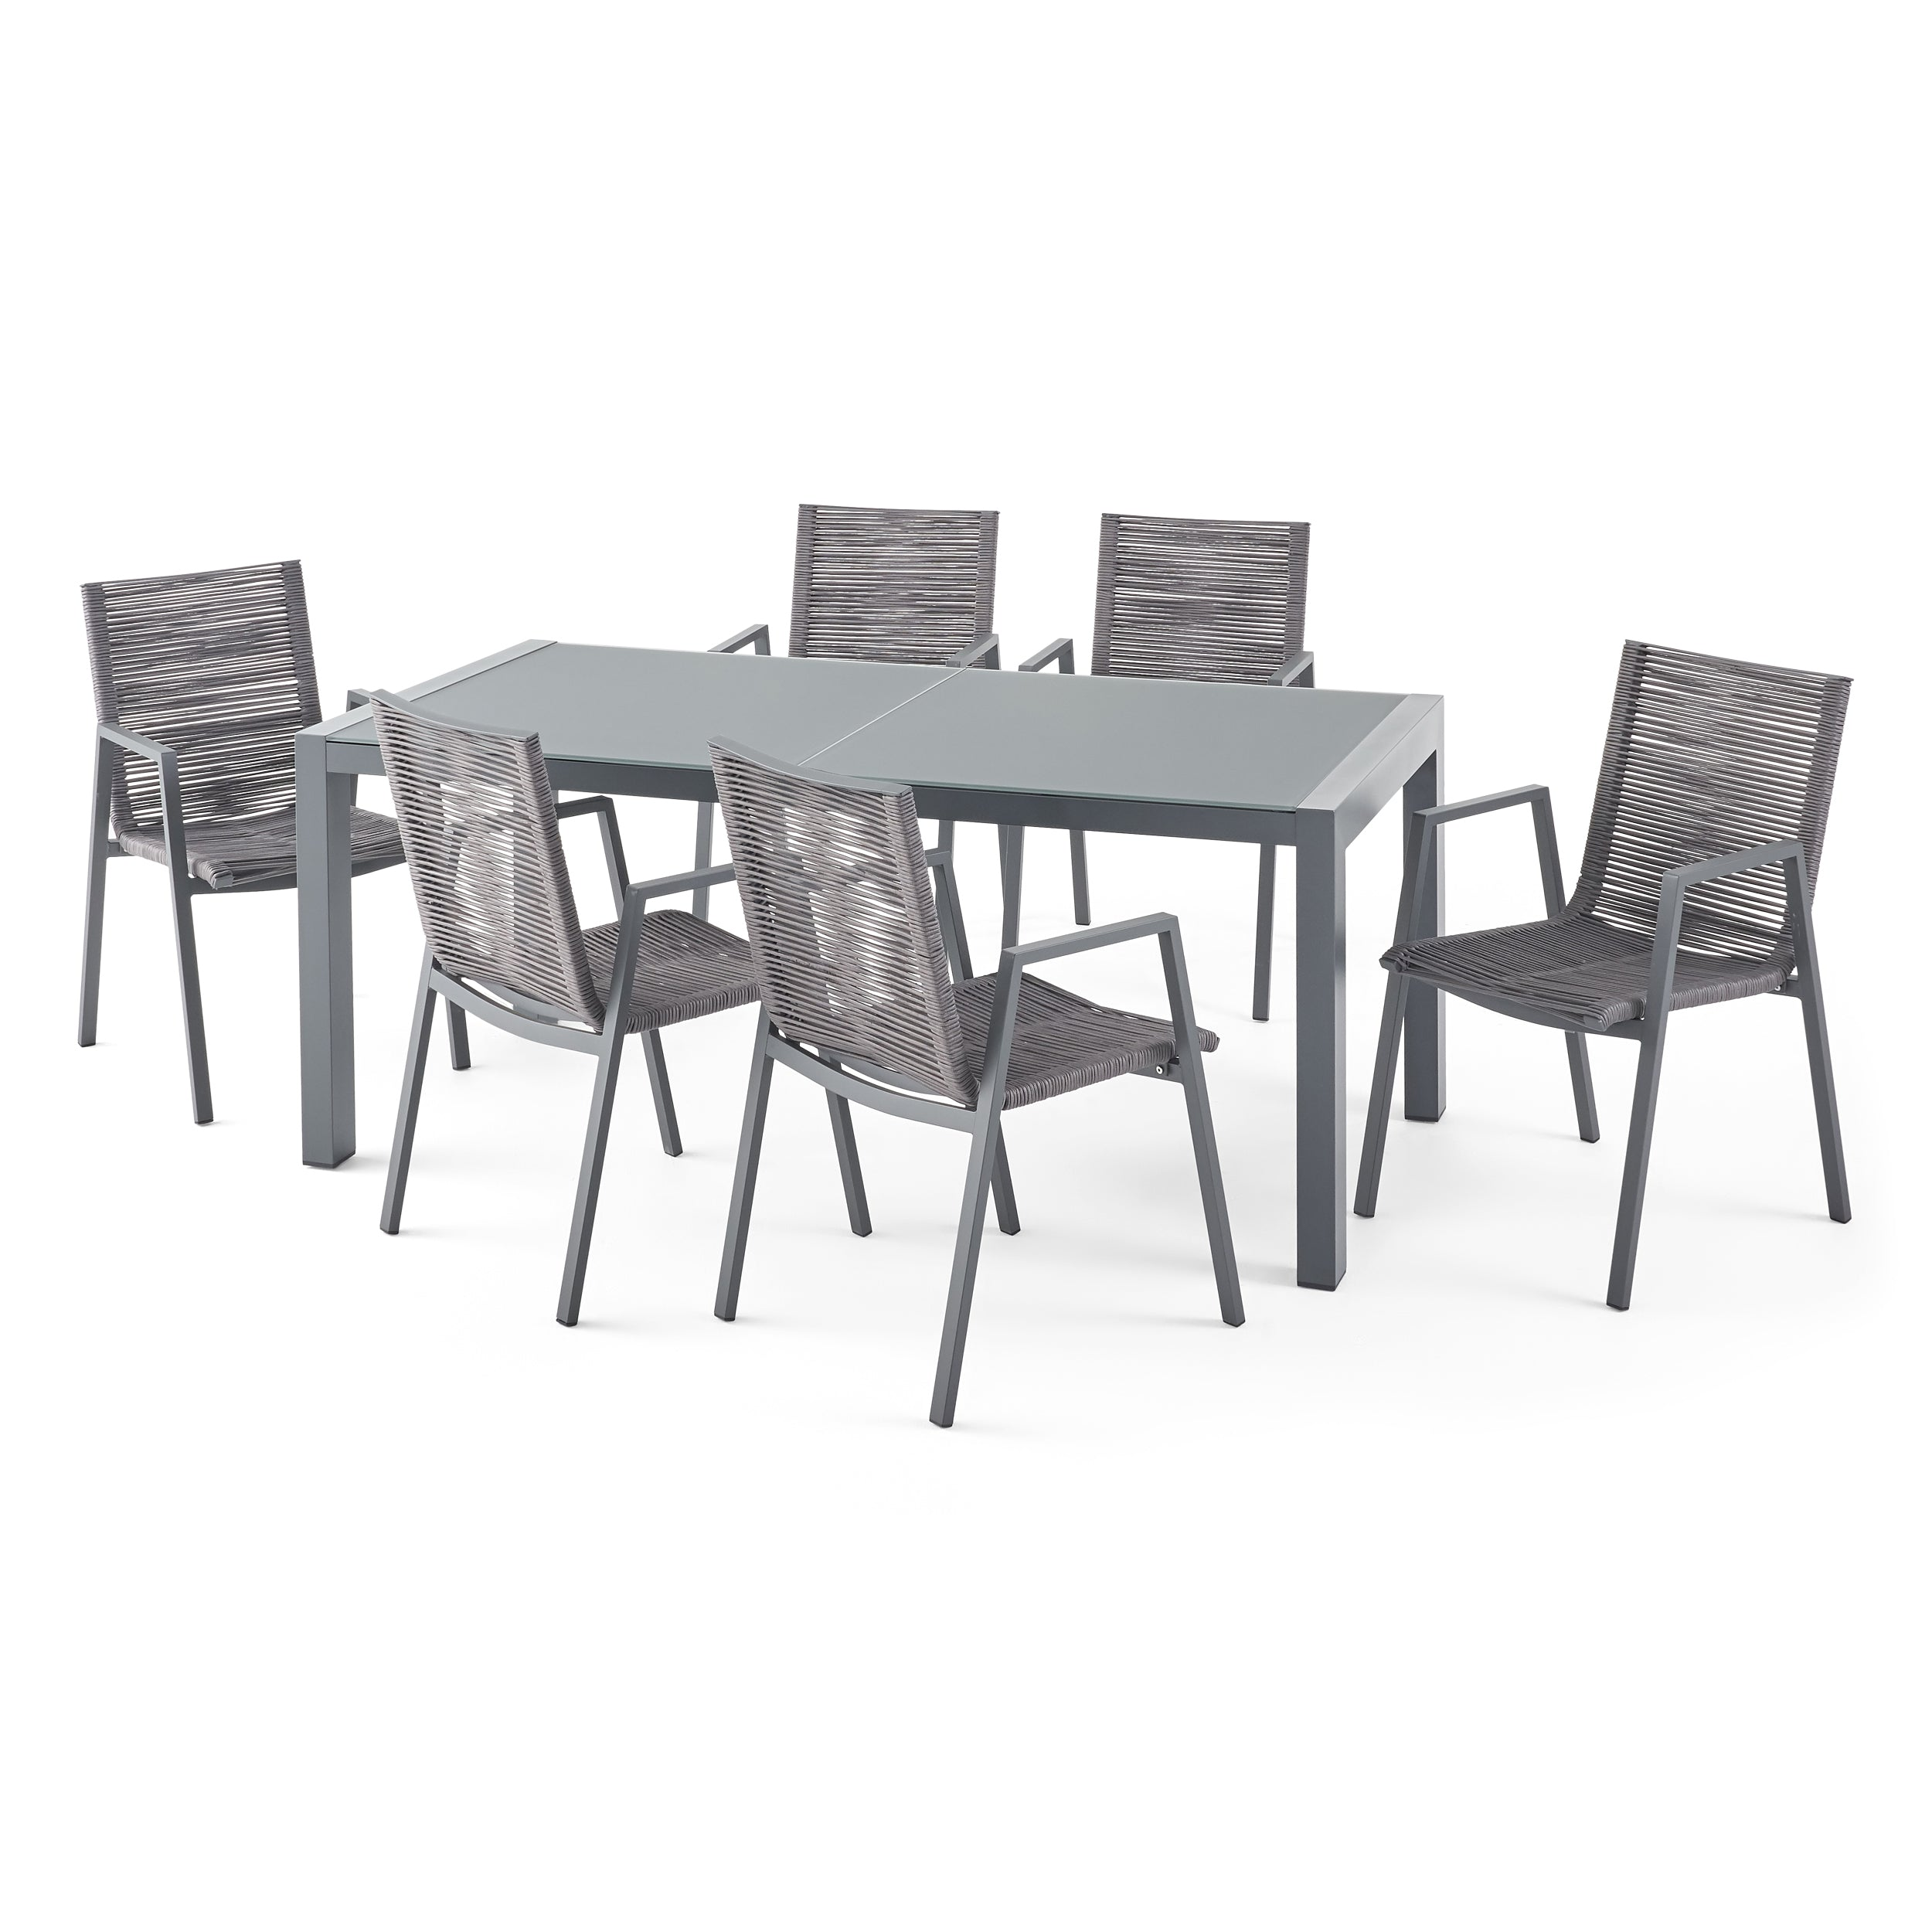 Amir Outdoor Modern 6 Seater Aluminum Dining Set with Tempered Glass Top GrayDark Gray